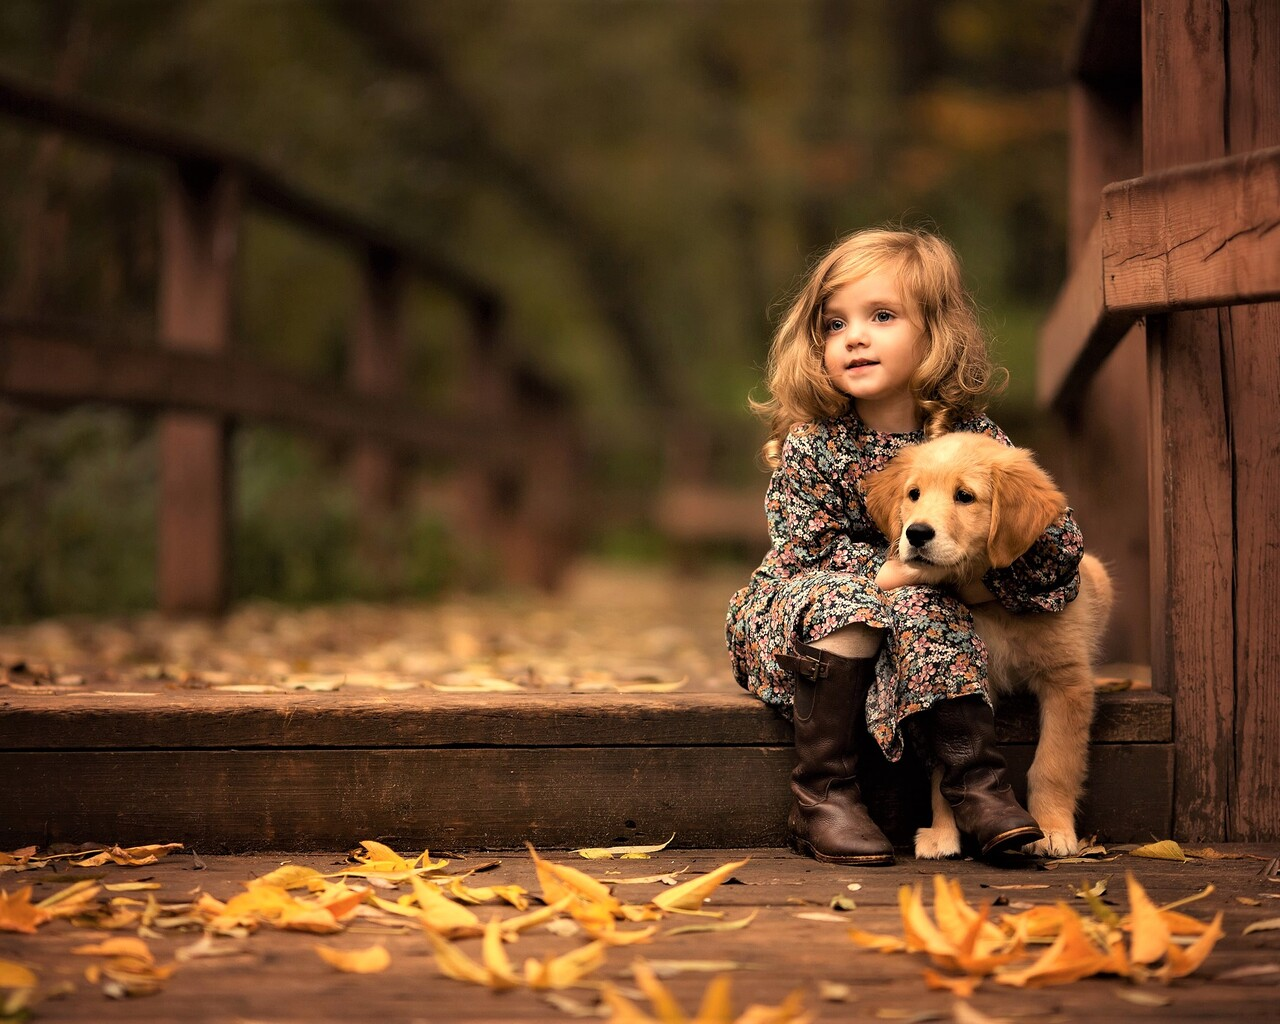 1280x1024 Little Girl With Golden Retriever Puppy 1280x1024 Resolution Hd 4k Wallpapers Images Backgrounds Photos And Pictures